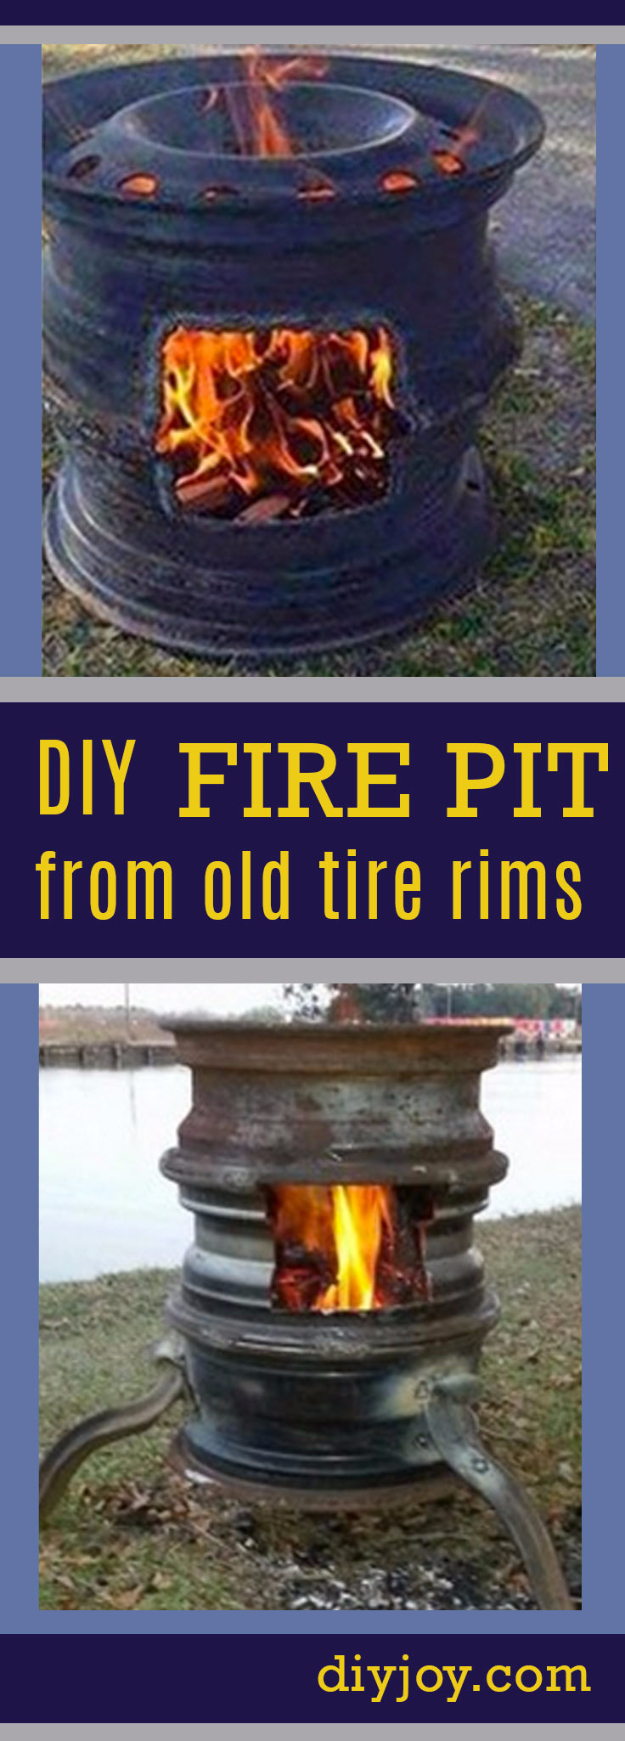 DIY Ideas for the Outdoors - Old Tire Rims Make For The Best DIY Fire Pits - Best Do It Yourself Ideas for Yard Projects, Camping, Patio and Spending Time in Garden and Outdoors - Step by Step Tutorials and Project Ideas for Backyard Fun, Cooking and Seating #diy